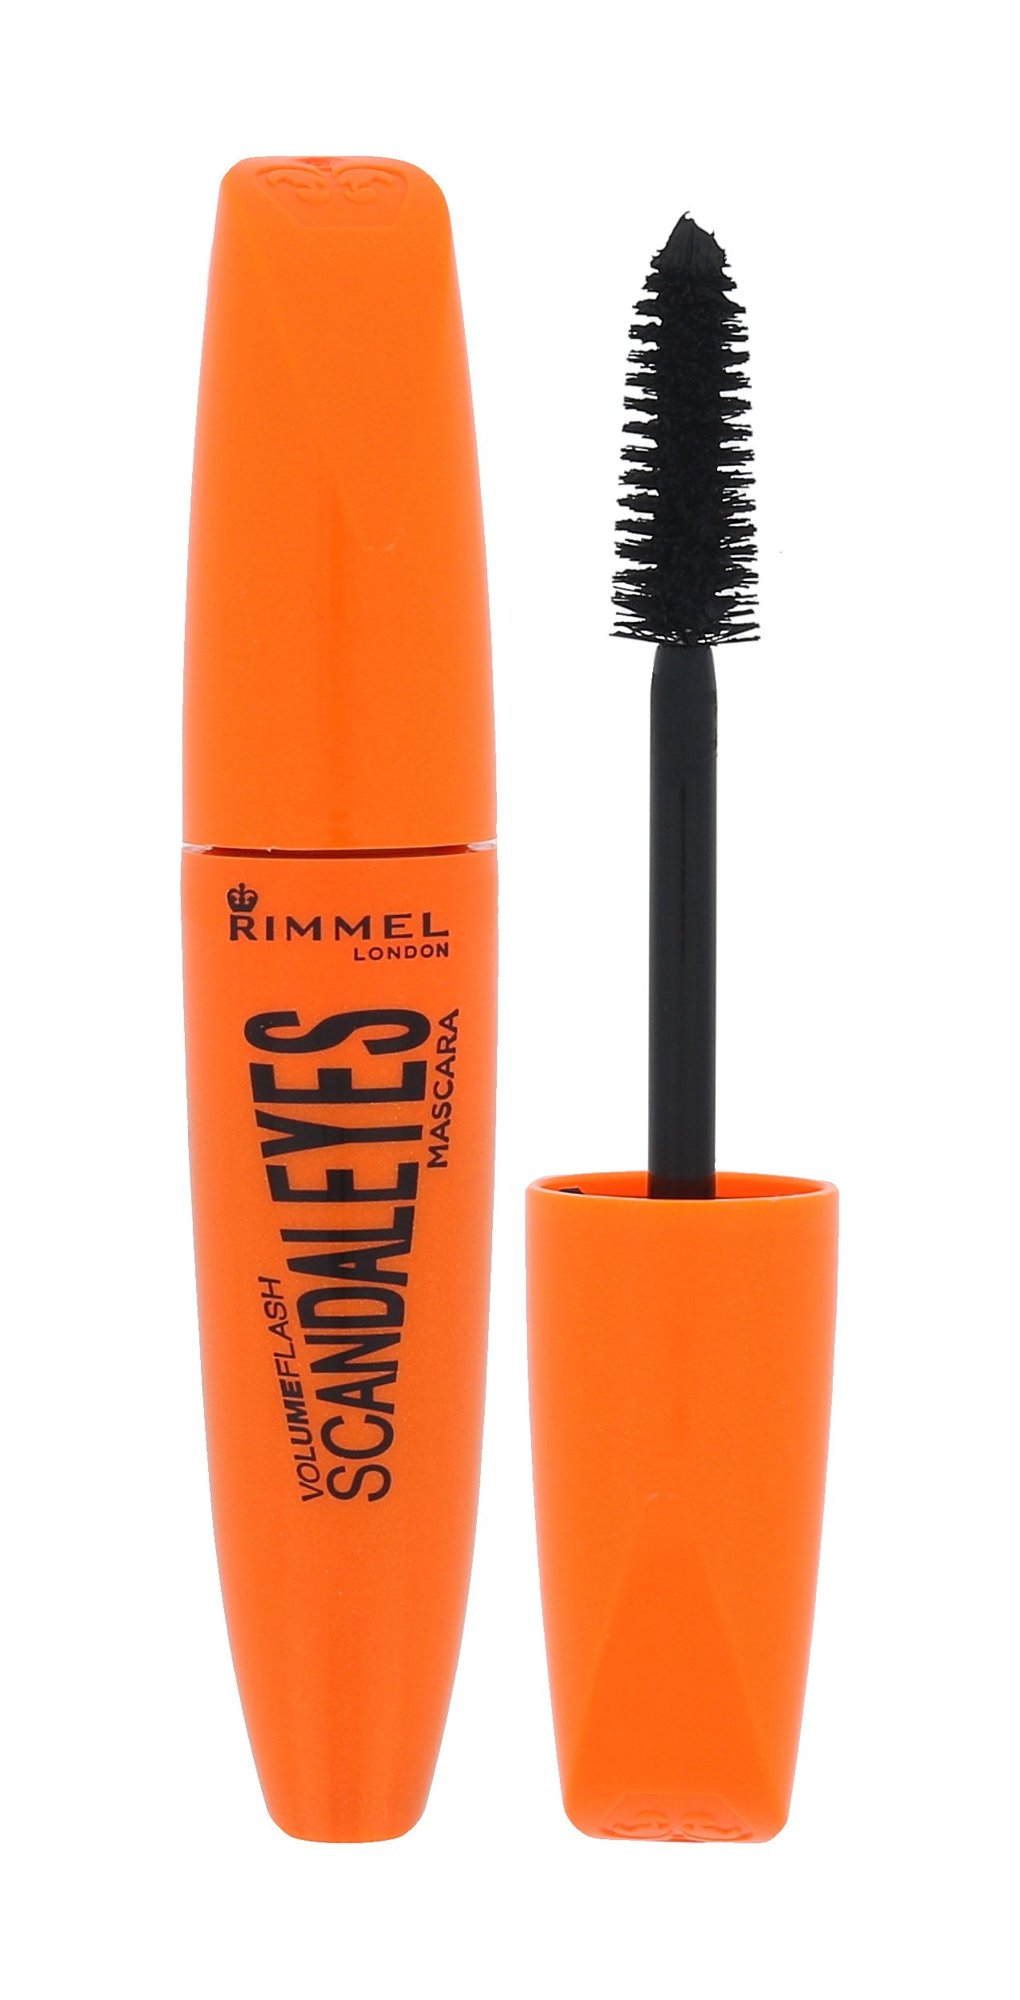 Rimmel London Scandal Eyes Cosmetic 12ml 001 Black